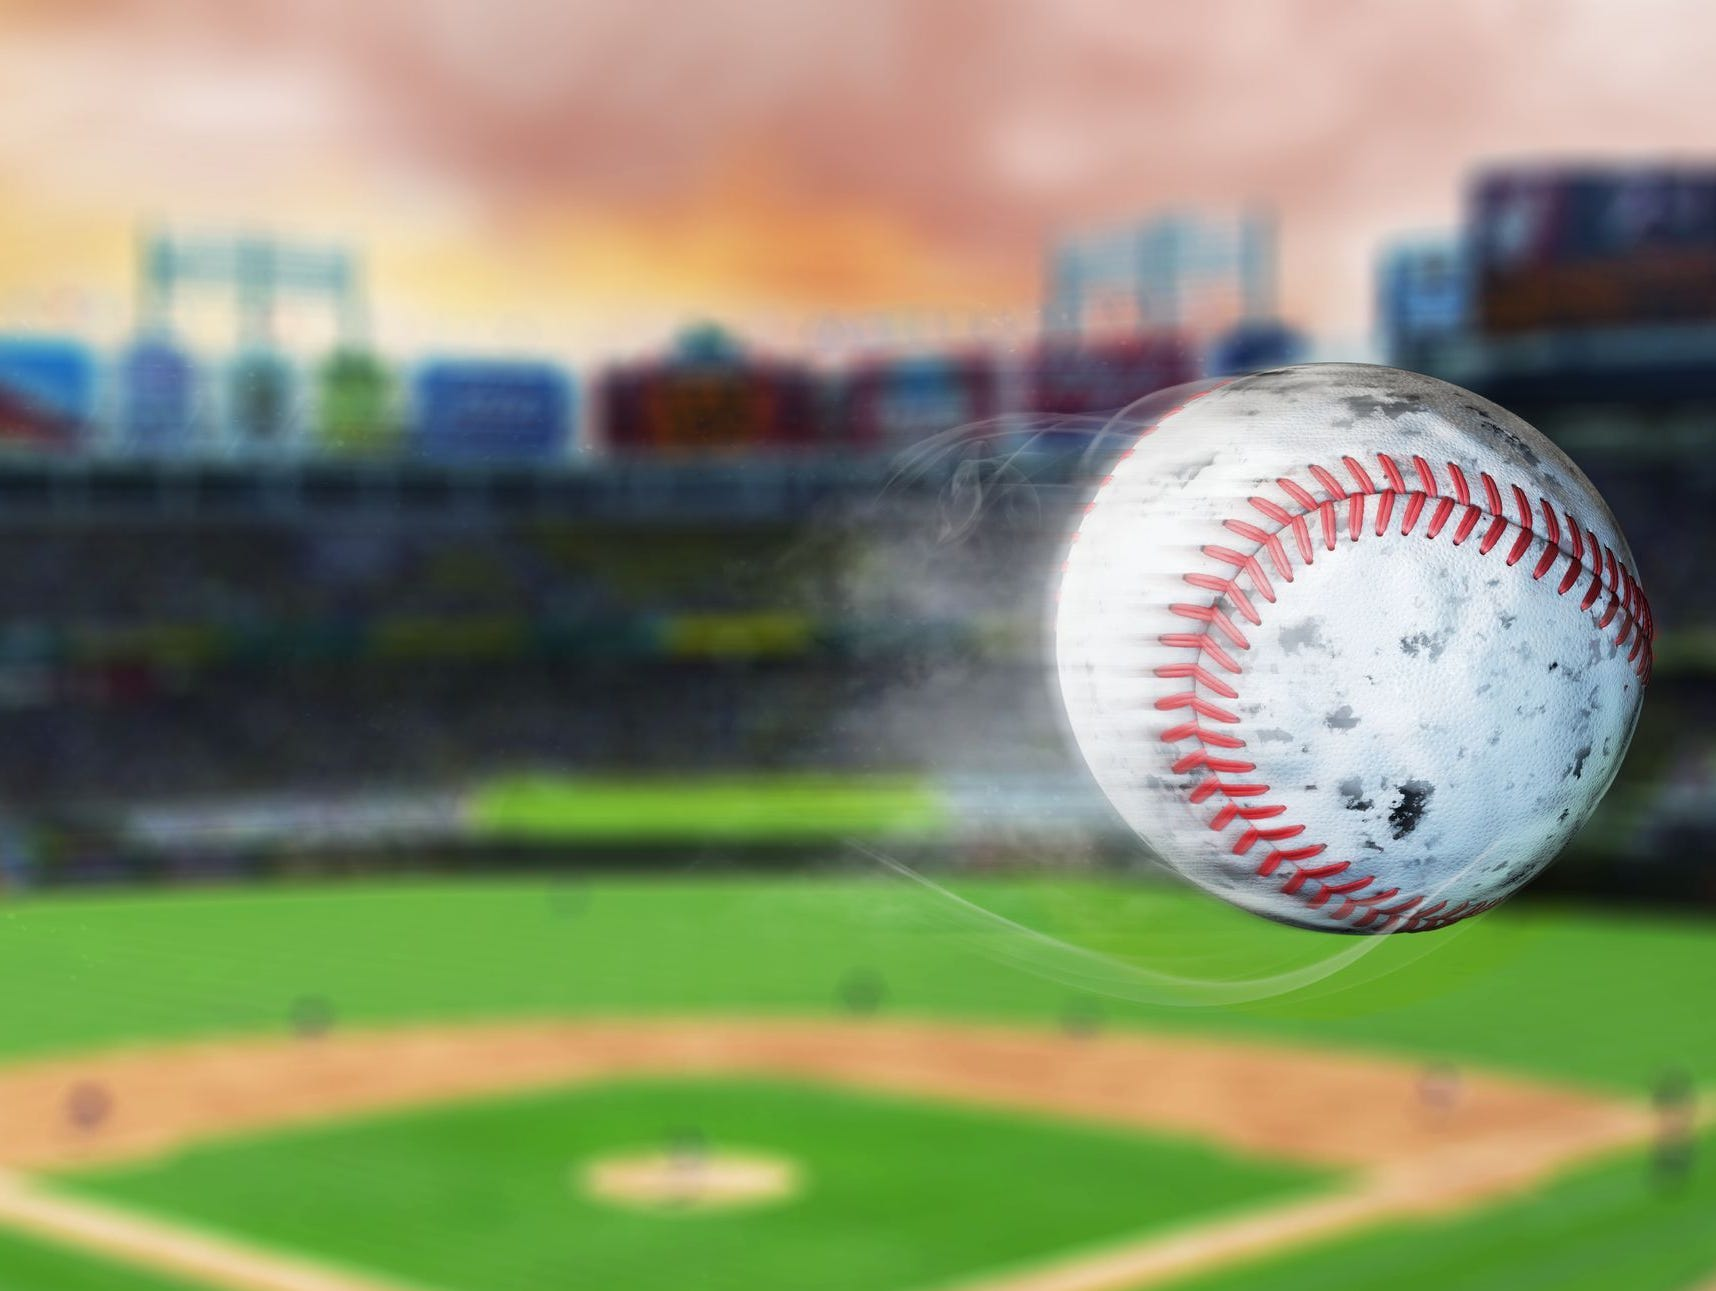 Enjoy an Arizona vs Colorado baseball game on 7/20. Enter 5/25 - 7/11 for a chance to win a pair of tickets!